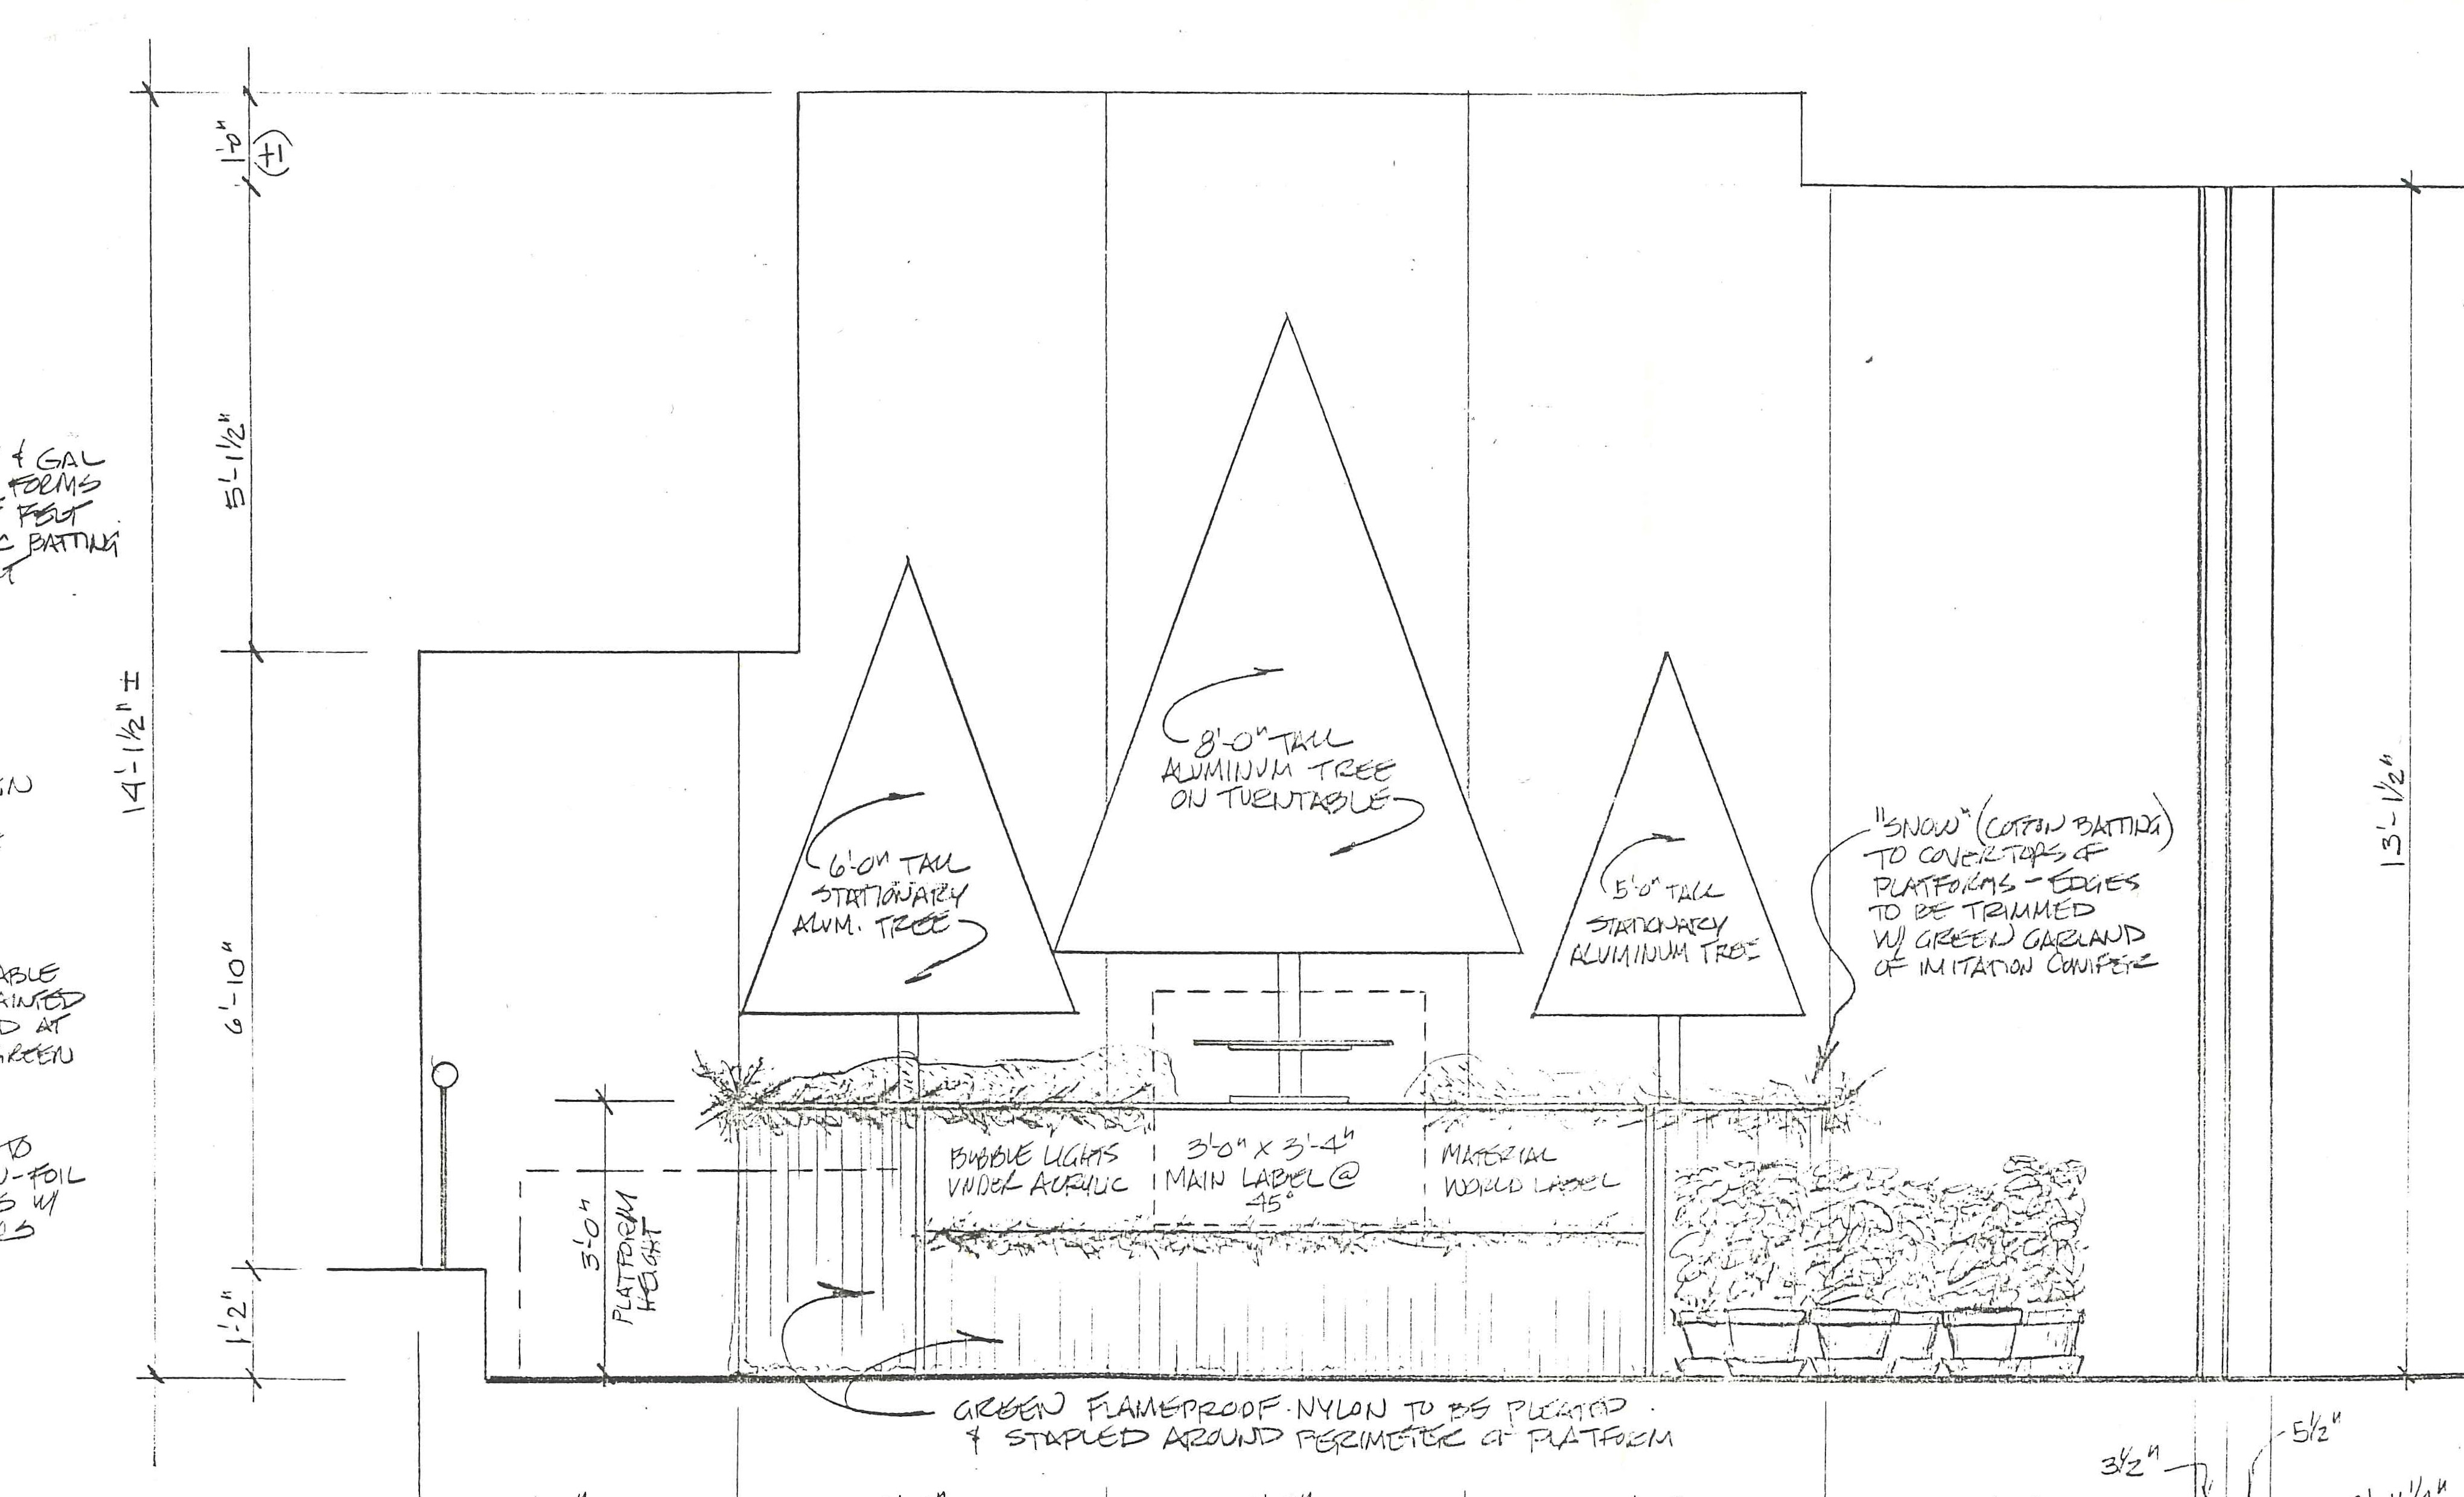 Trees of Christmas - Exhibition drawings, 1992. Smithsonian Institution Archives, Accession 96-001: